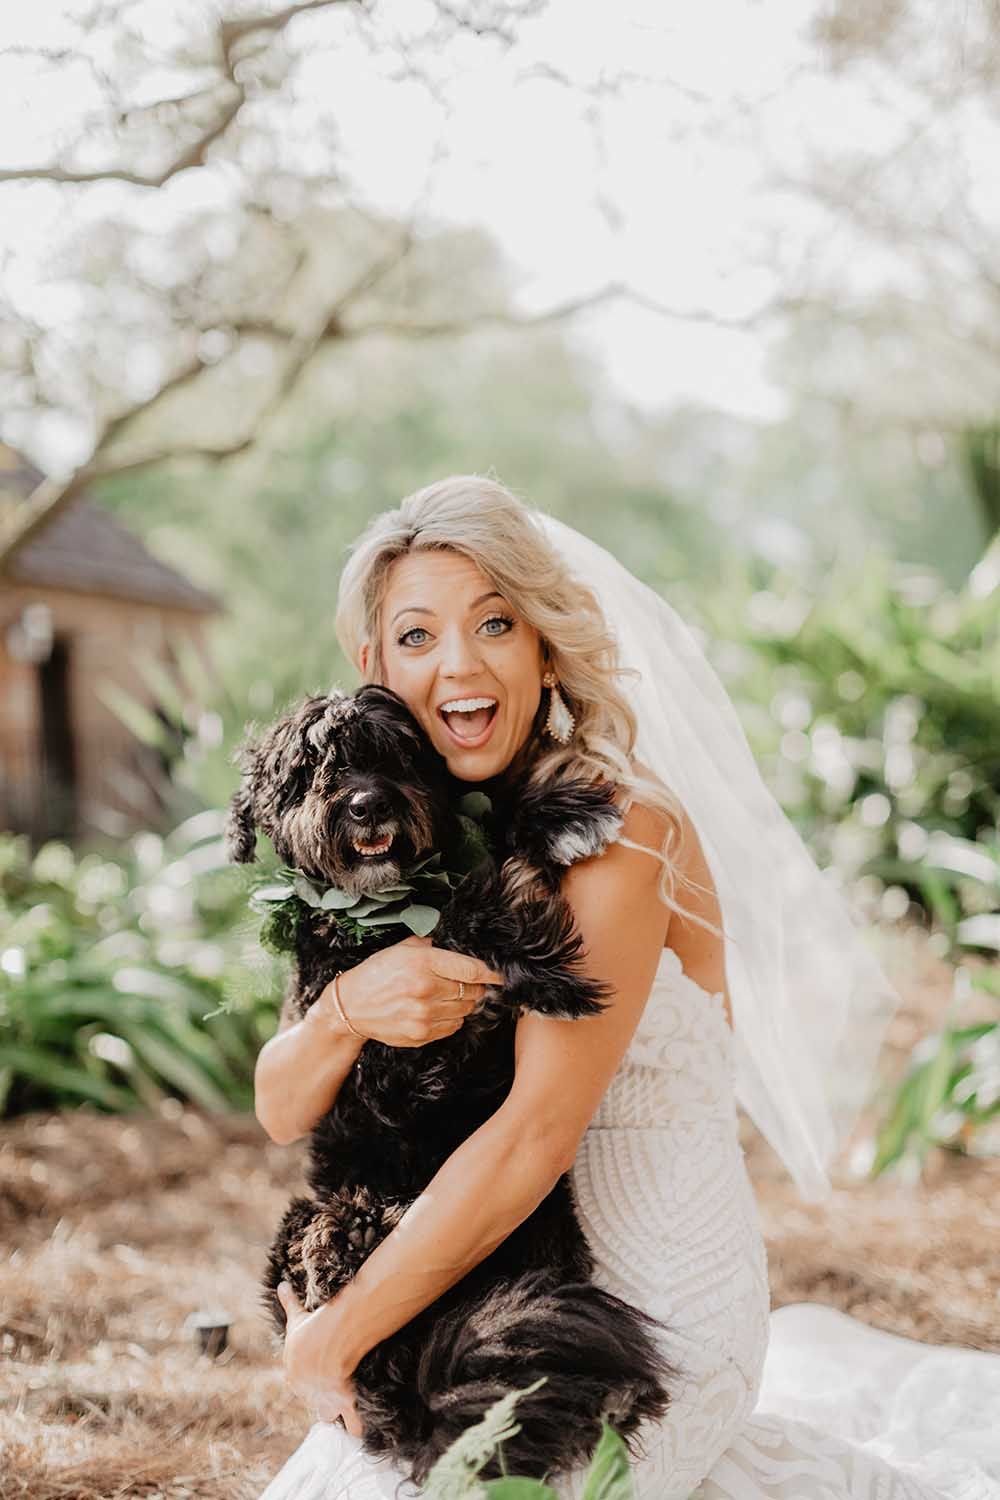 Bride & Dog Photo | photo by Emily Green Photography | featured on I Do Y'all